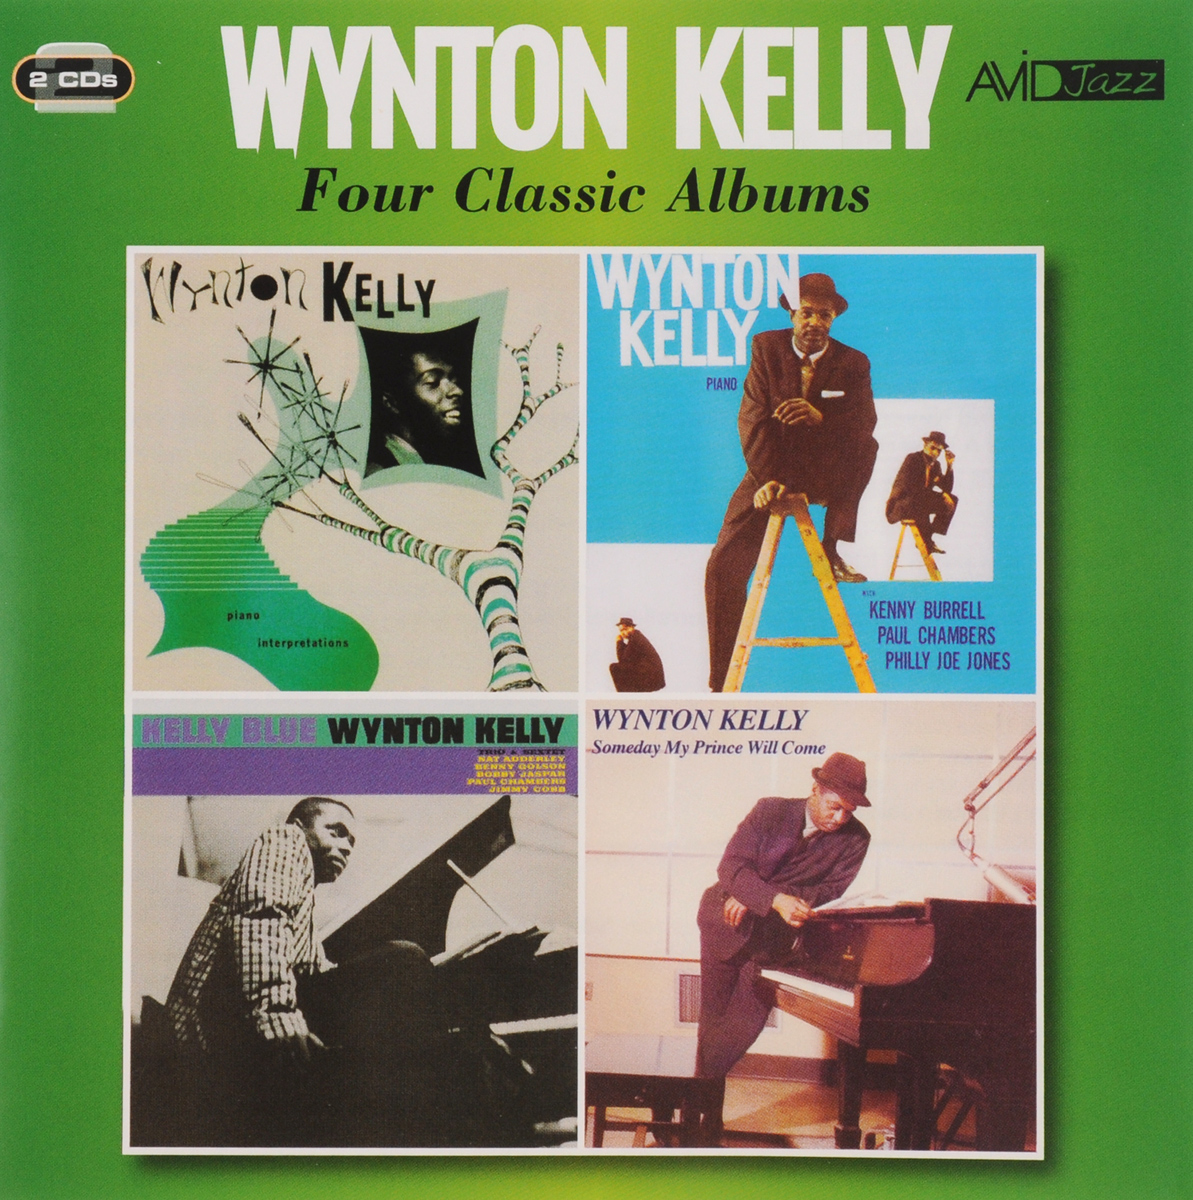 Уинтон Келли Avid Jazz. Wynton Kelly. Four Classic Albums (2 CD) каунт бэйси count basie four classic albums plus 2 cd